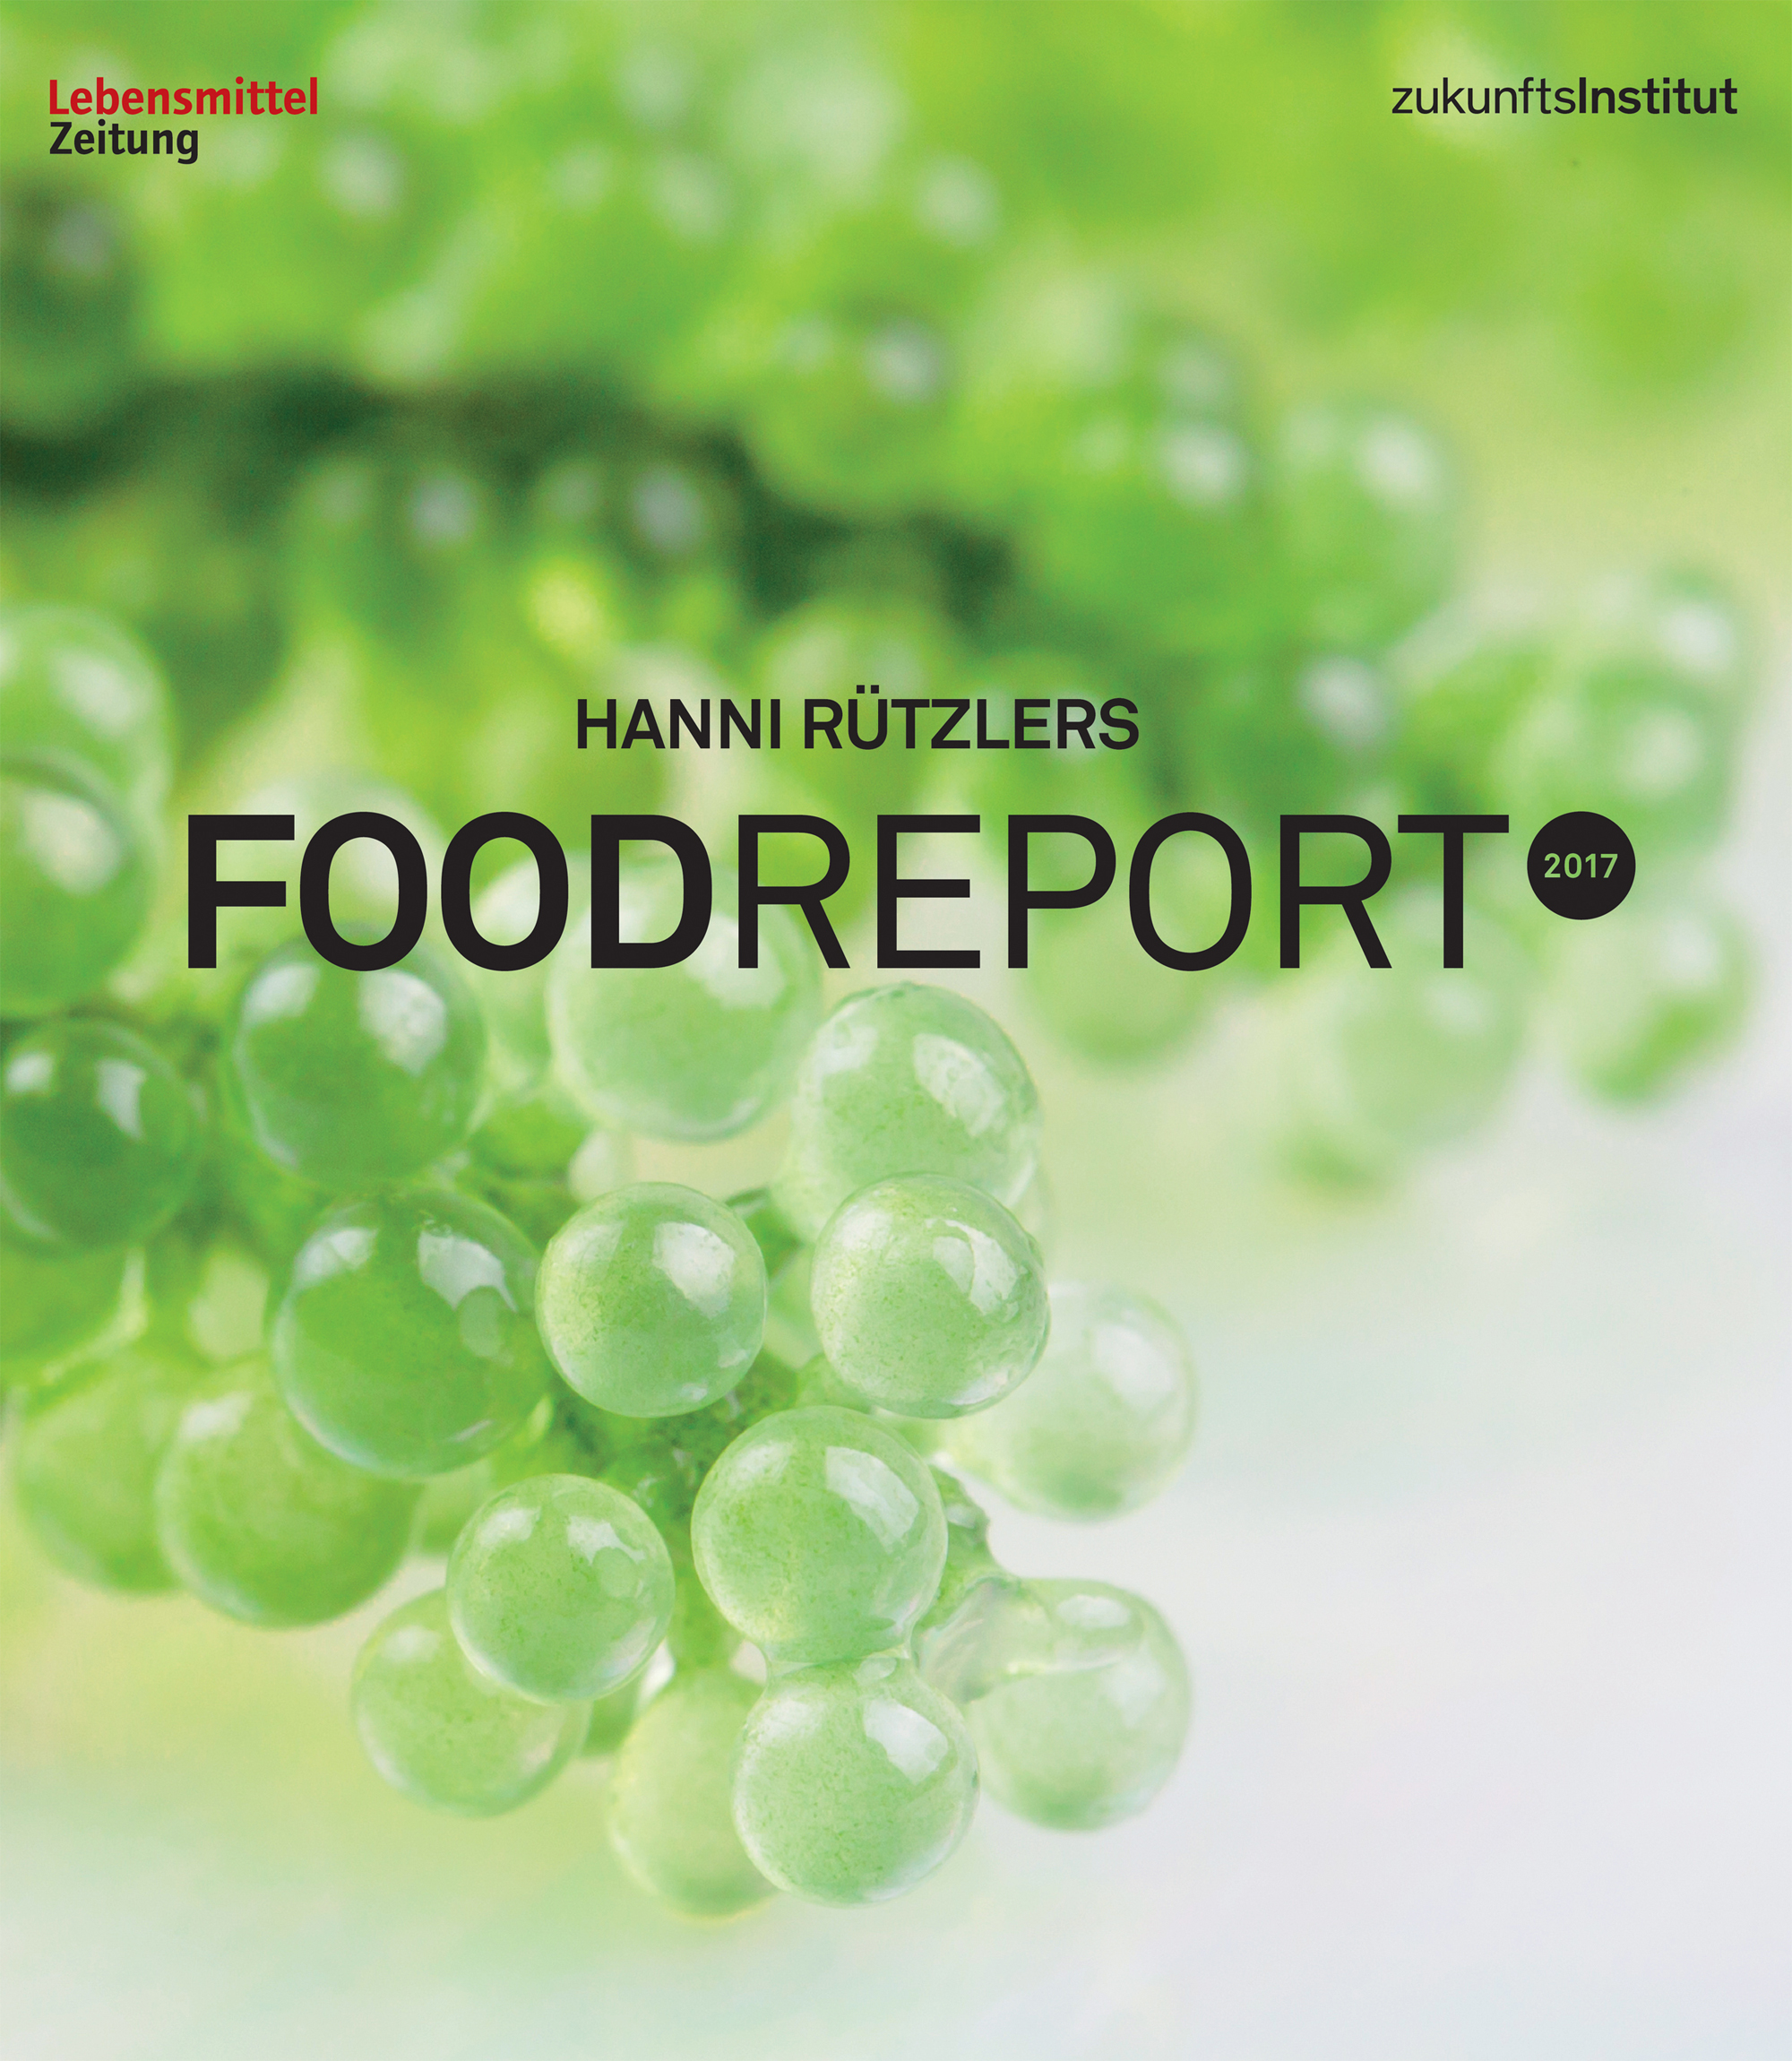 Foto: obs/Lebensmittel Zeitung/Cover Food-Report